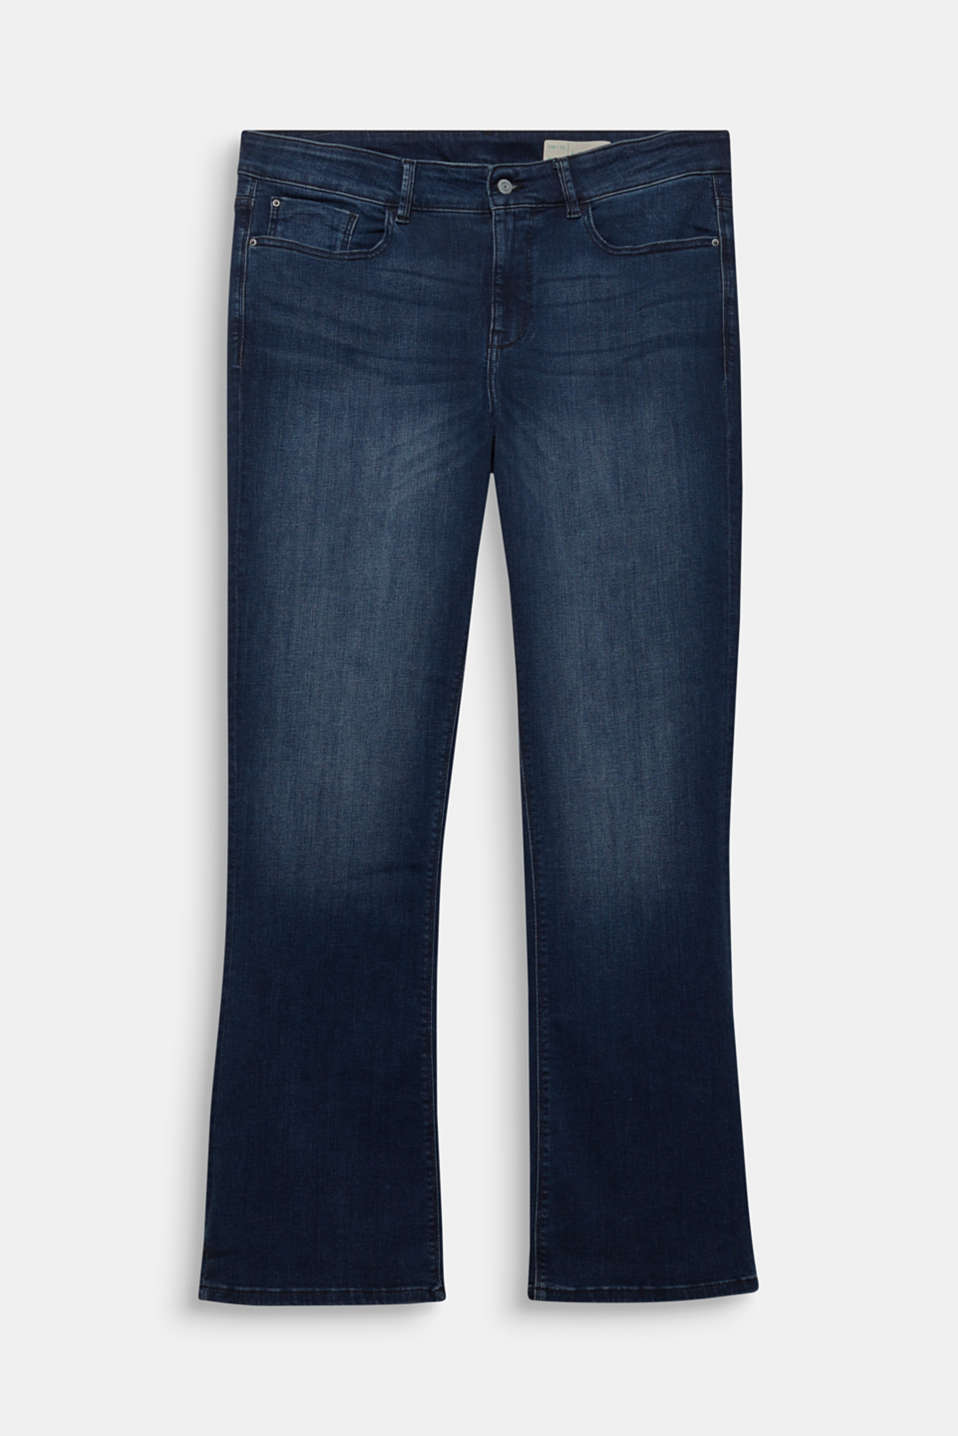 CURVY jeans with a high percentage of stretch, BLUE DARK WASH, detail image number 7